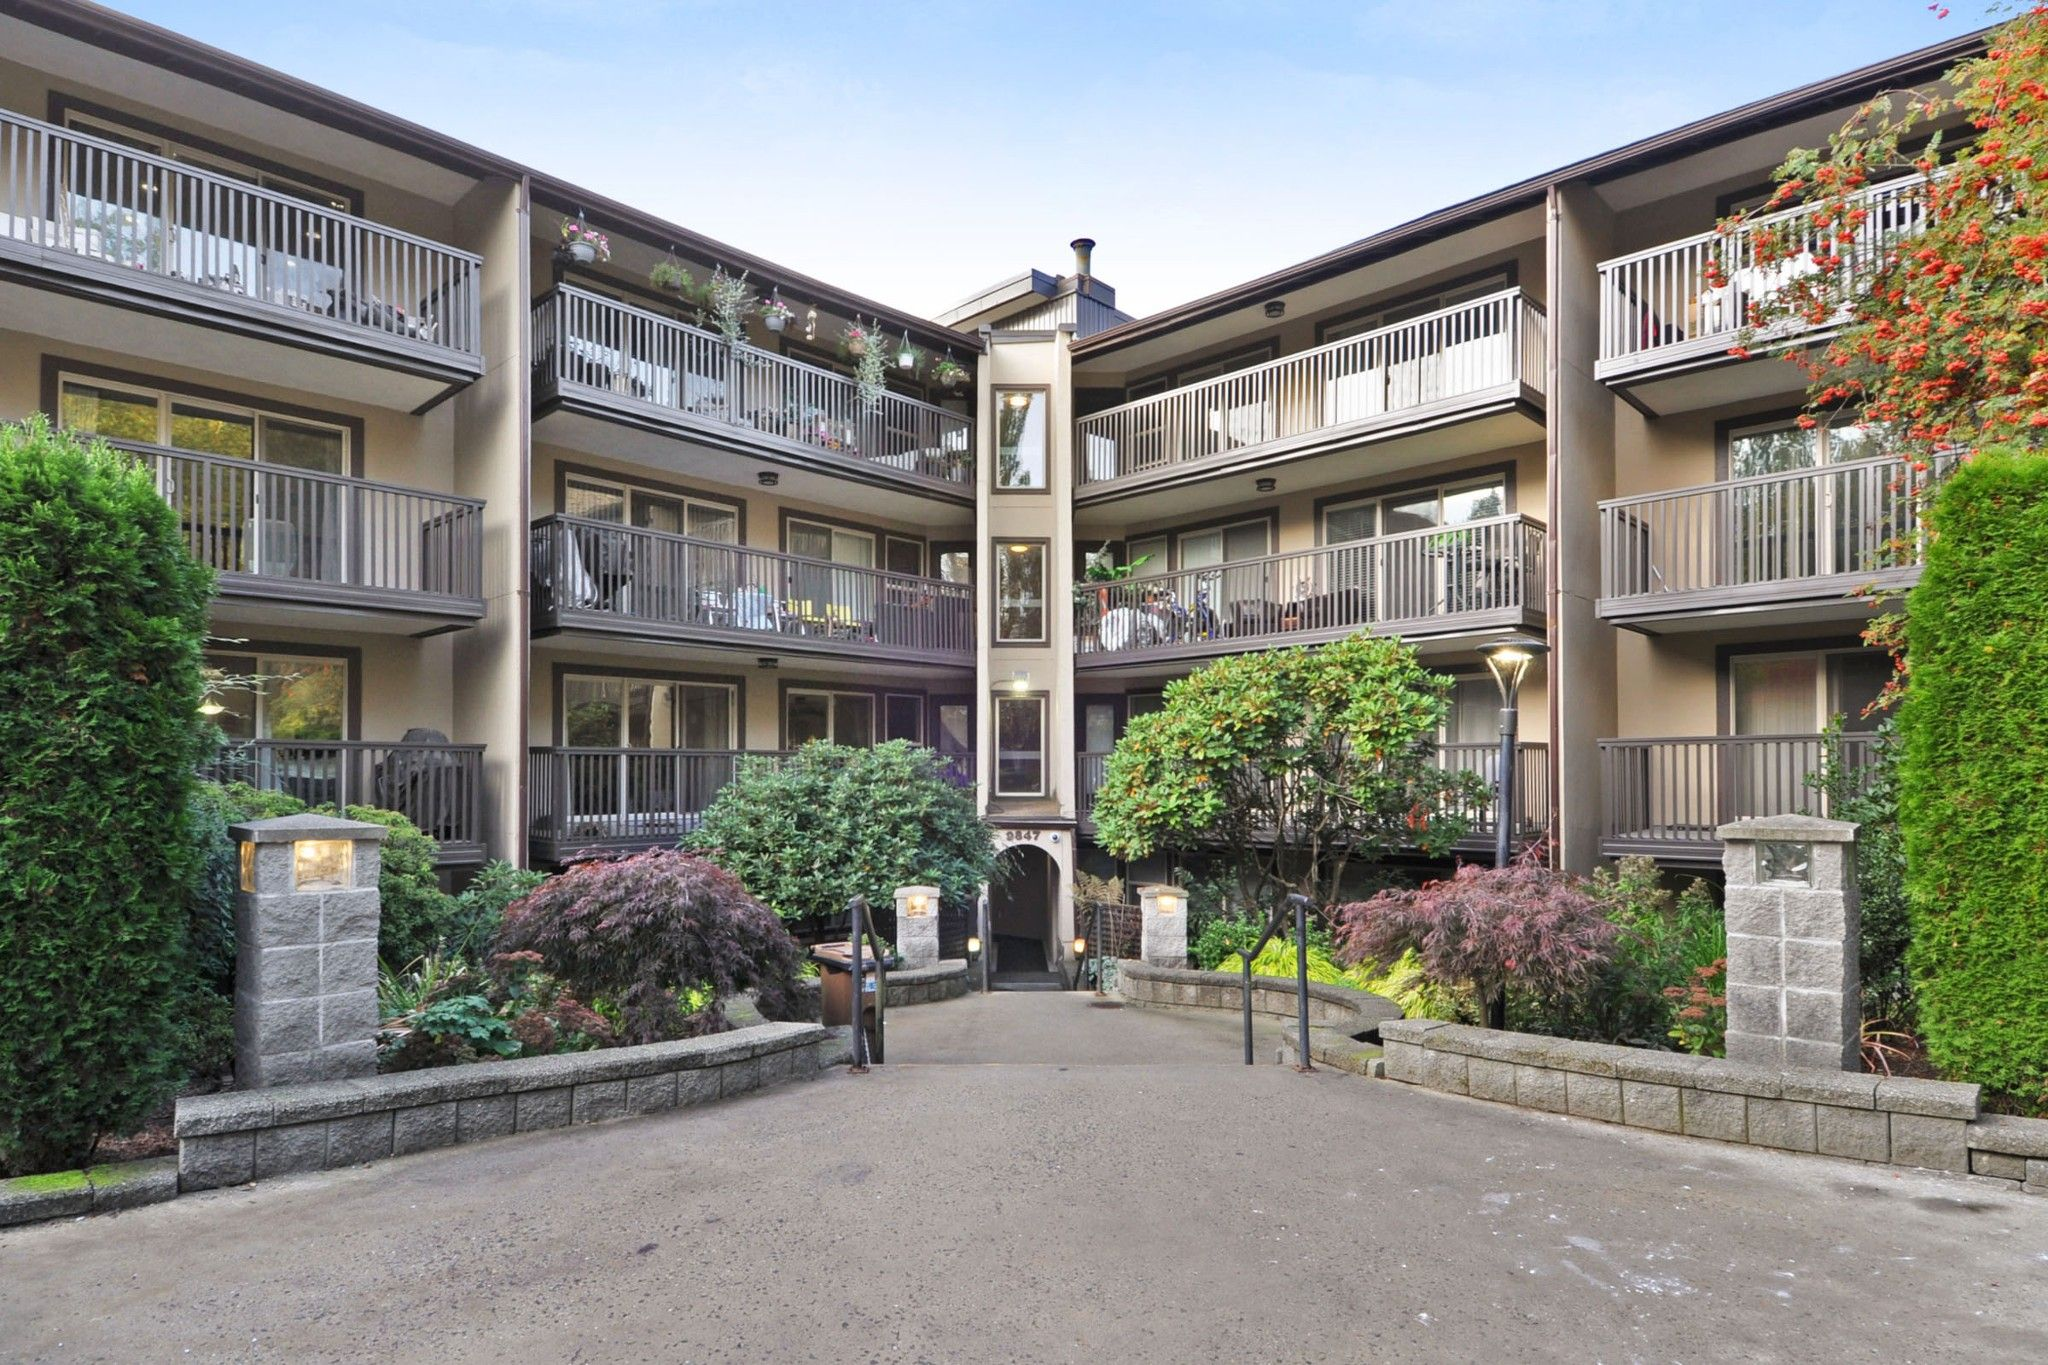 """Main Photo: 311 9847 MANCHESTER Drive in Burnaby: Cariboo Condo for sale in """"Barclay Woods"""" (Burnaby North)  : MLS®# R2317069"""